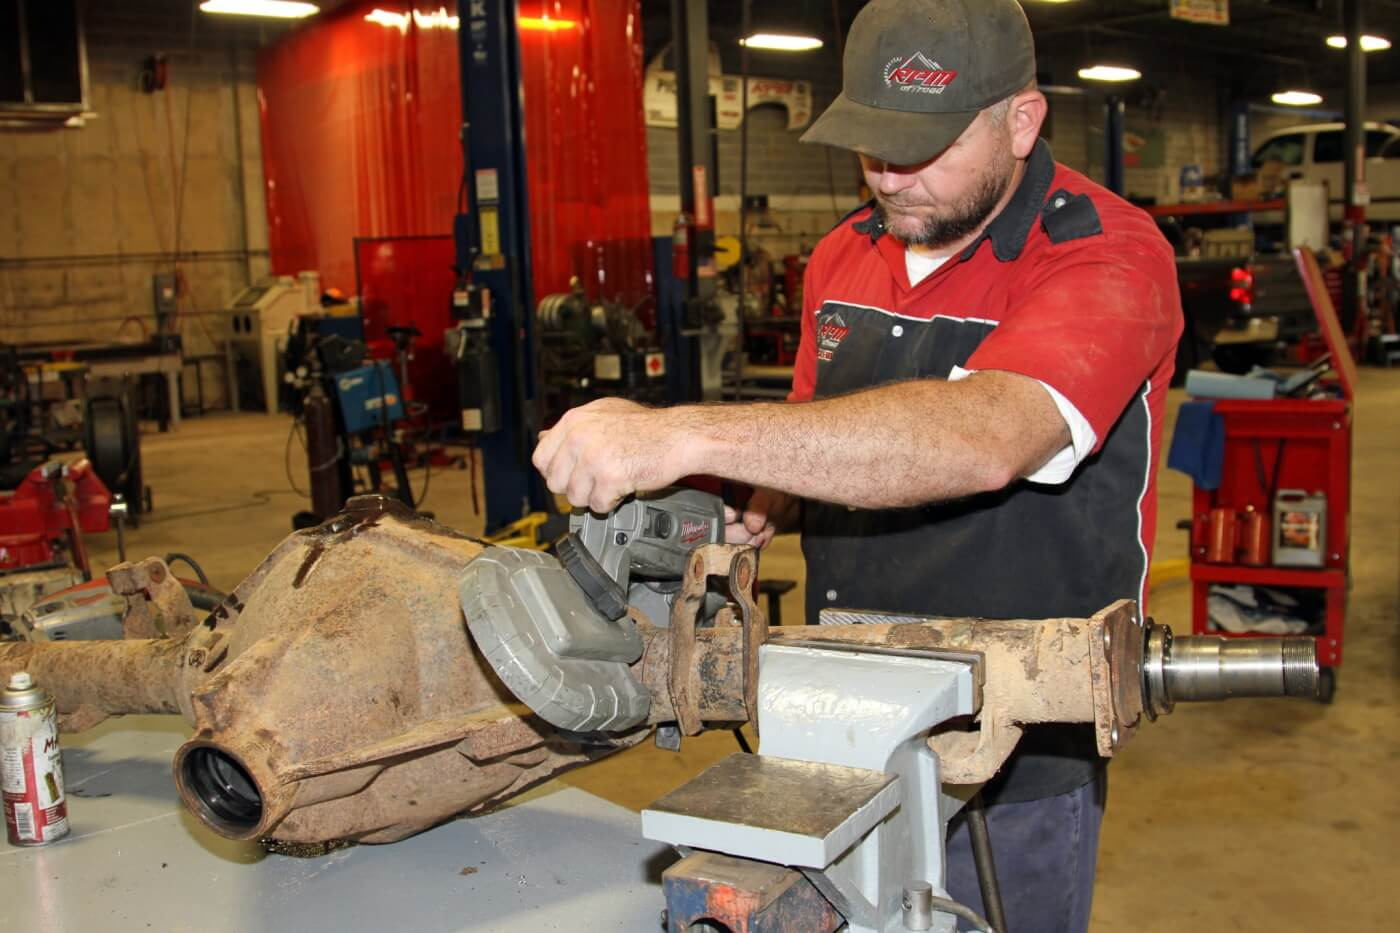 11. After taking careful measurements to determine the leaf spring pad location as well as the precise axle tube length Nelson uses a portable band saw to cut the axle tubes. The saw makes quick work of the 1/4-inch thin wall tubing.